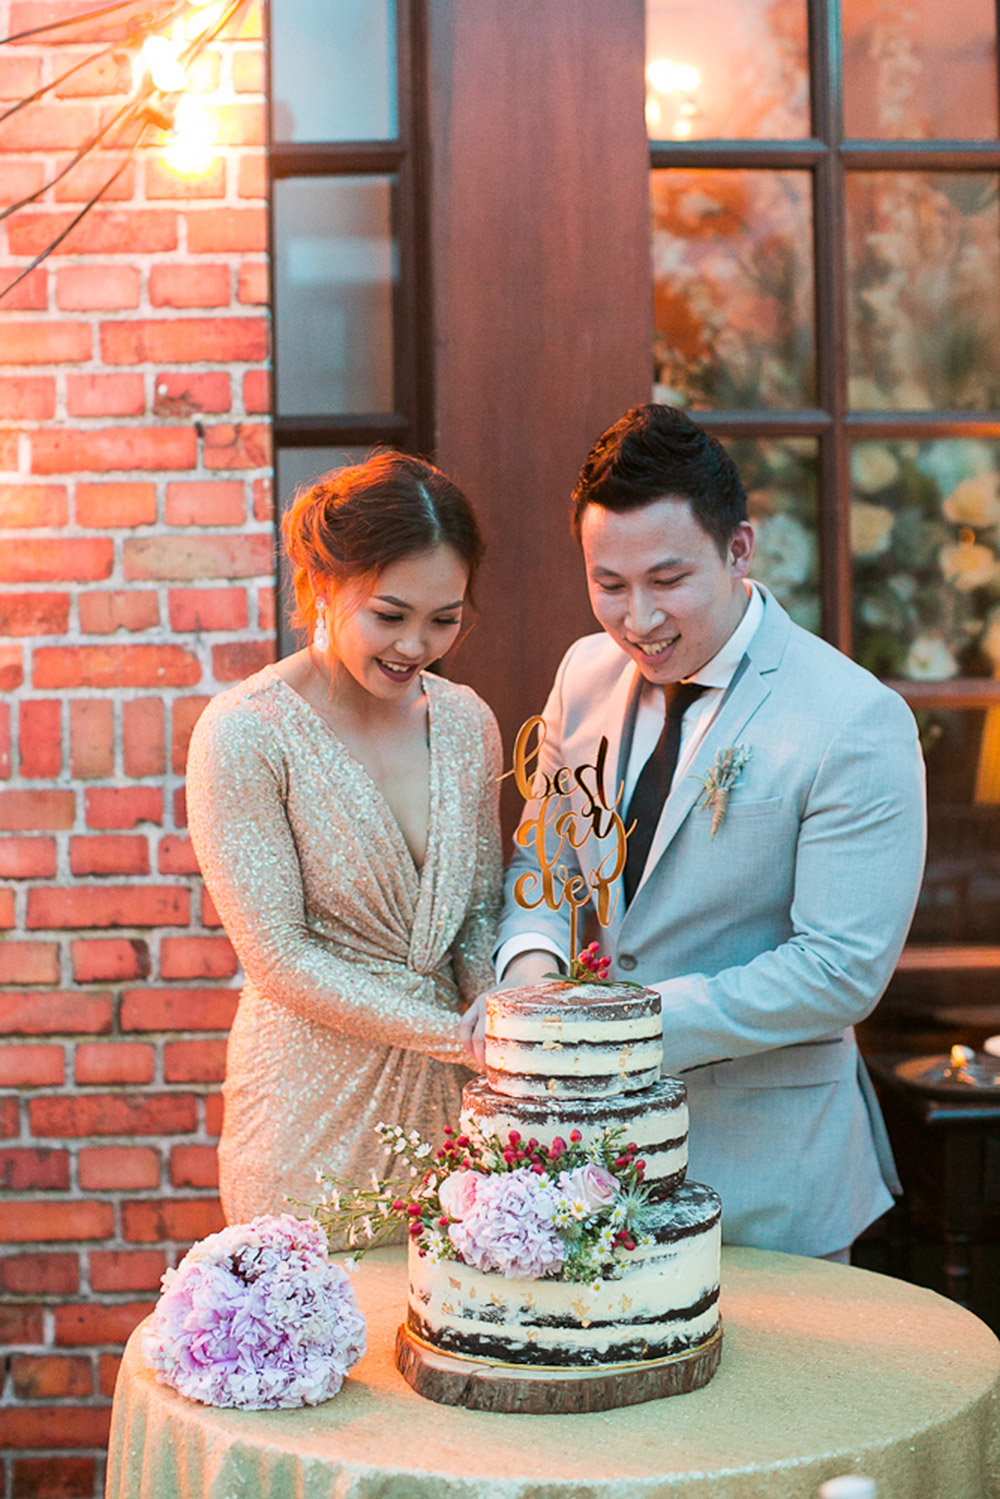 Anna Rina Photography. www.theweddingnotebook.com